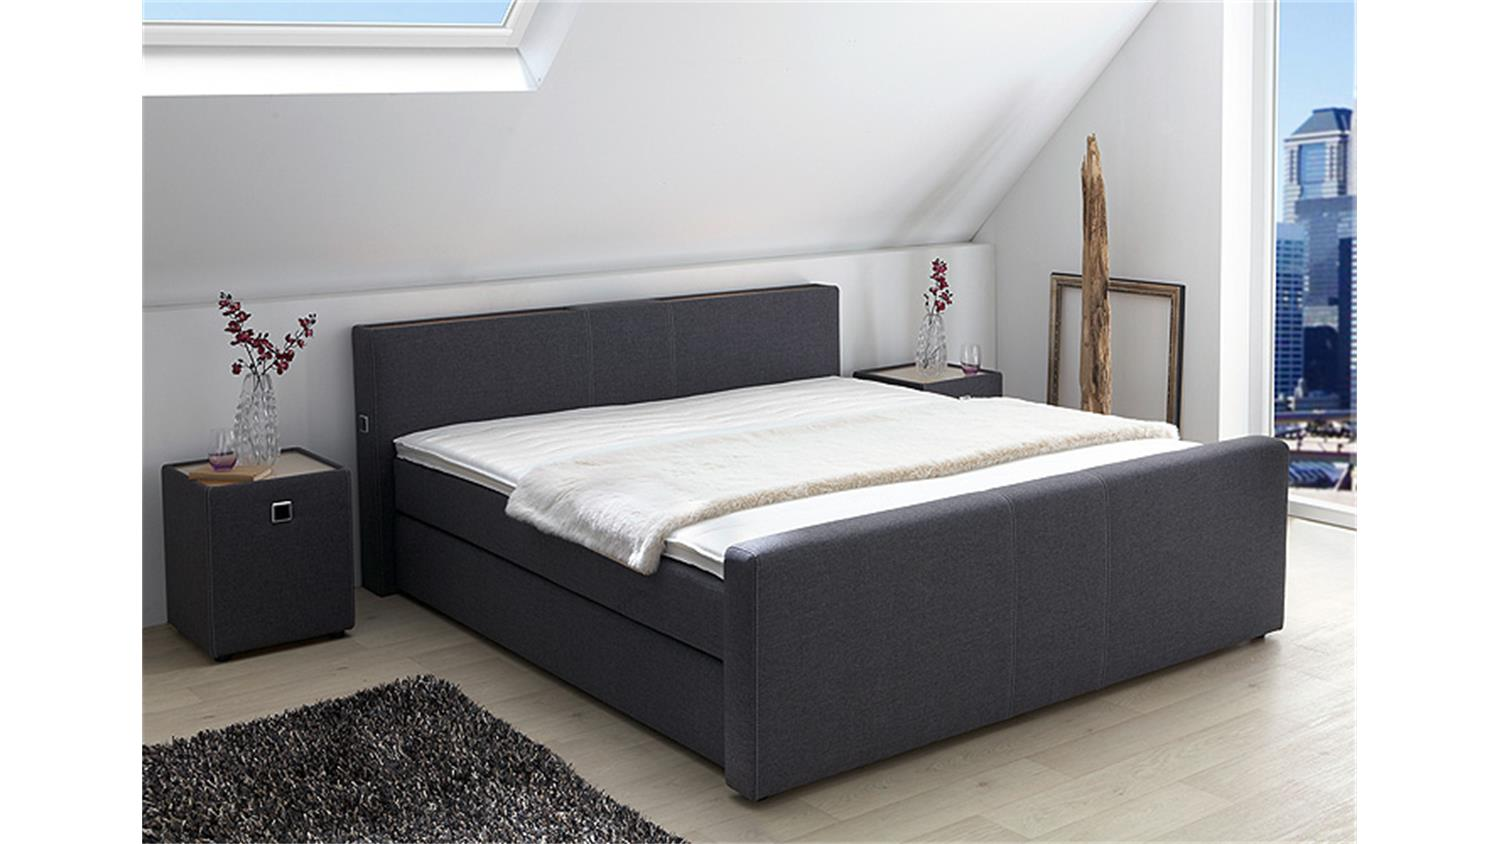 sam led boxspringbett 200 200 cm sapri kunstleder schwarz bonellfederkern box 7 zonen h2 h3. Black Bedroom Furniture Sets. Home Design Ideas